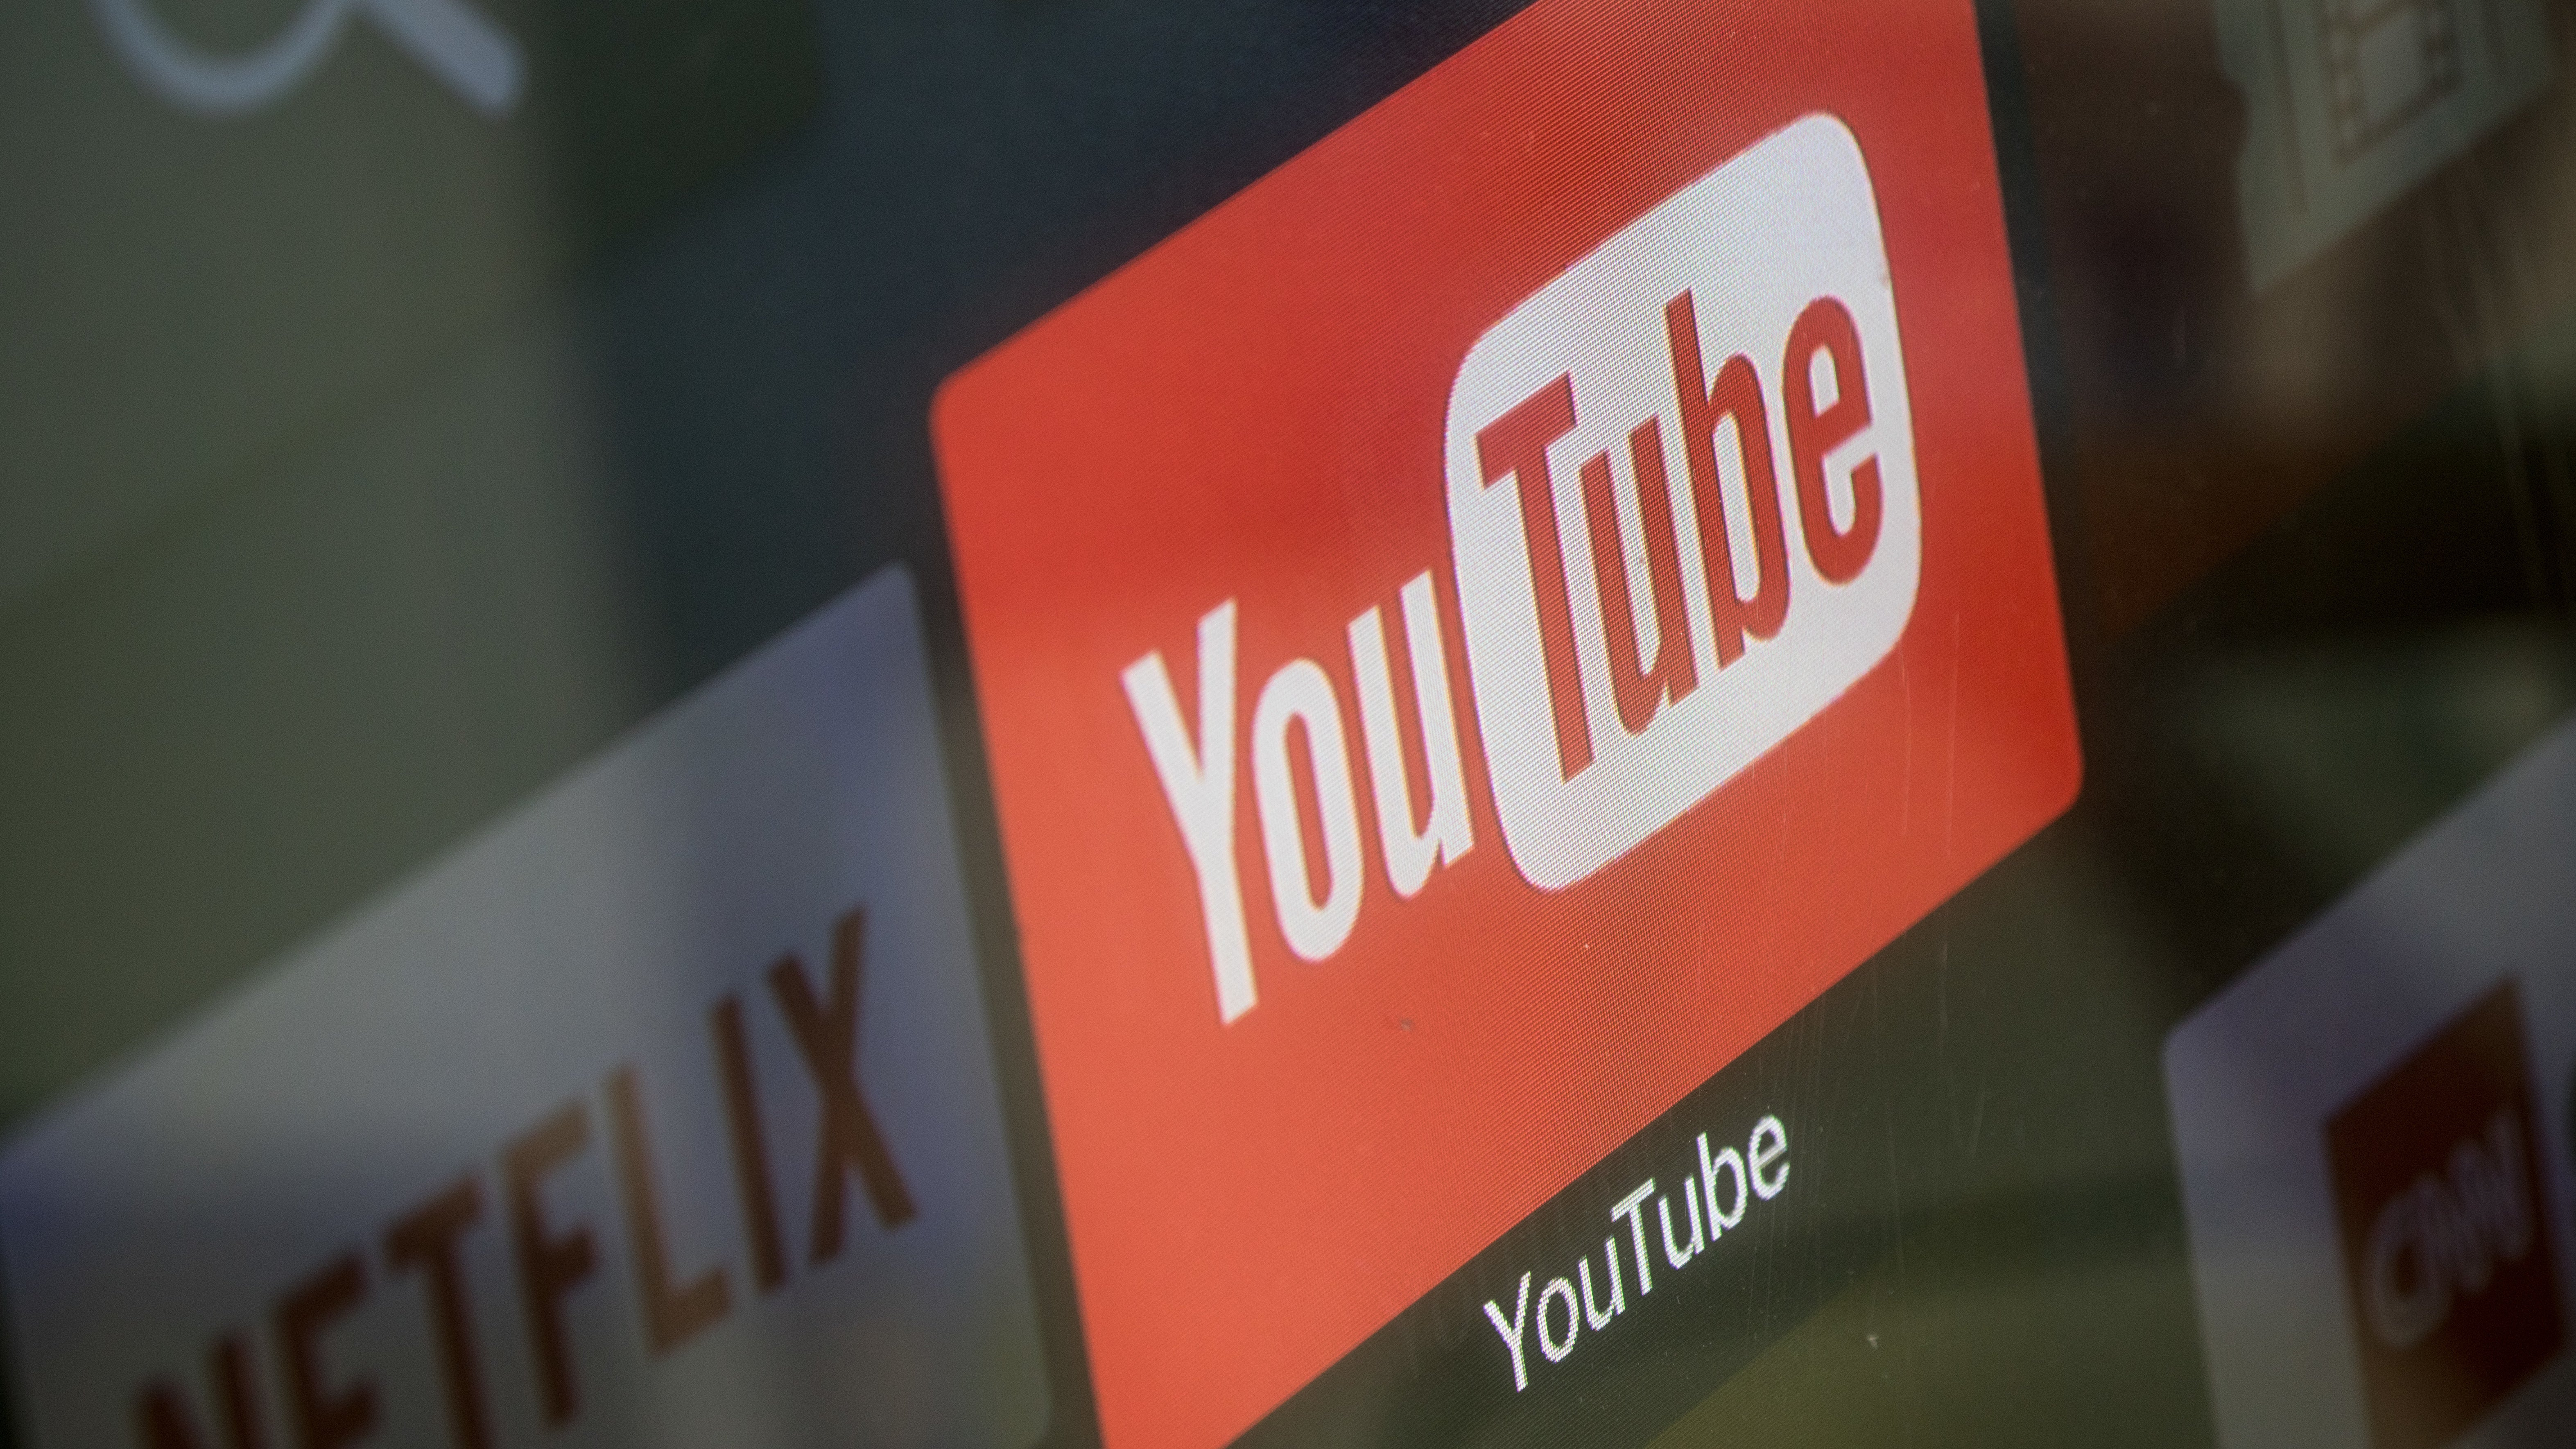 YouTube Feigns Interest In Your Digital Wellbeing With 'Take A Break' Notifications